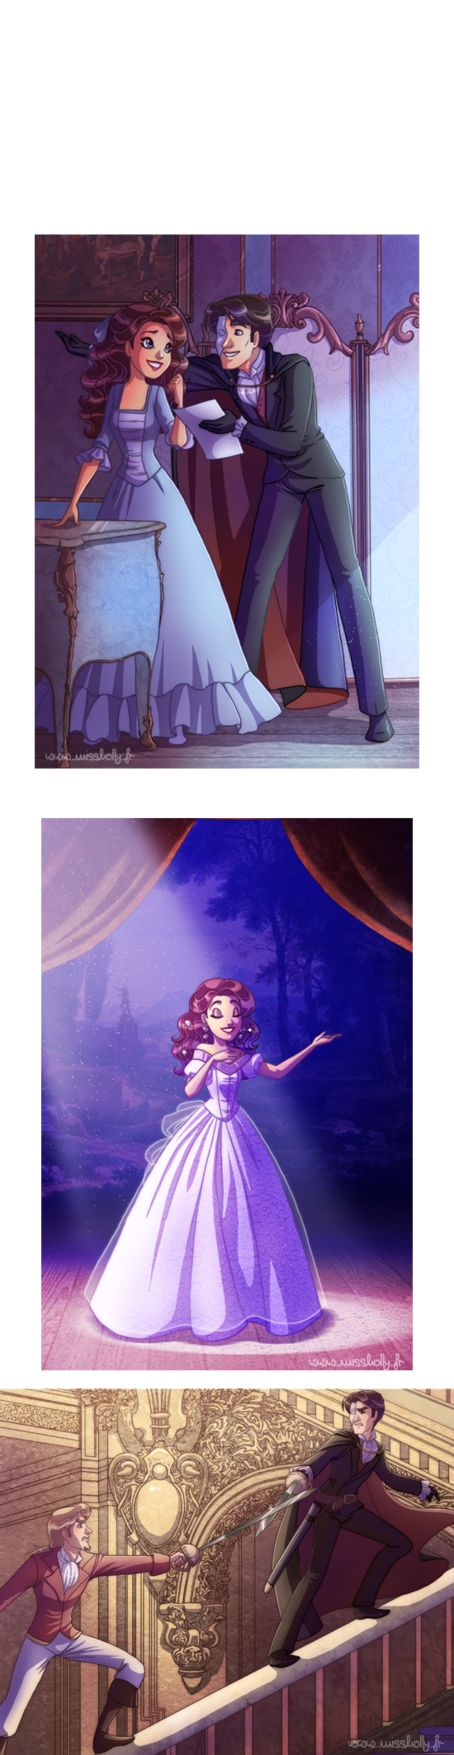 If the Phantom of the Opera was Disney... I need this in my life